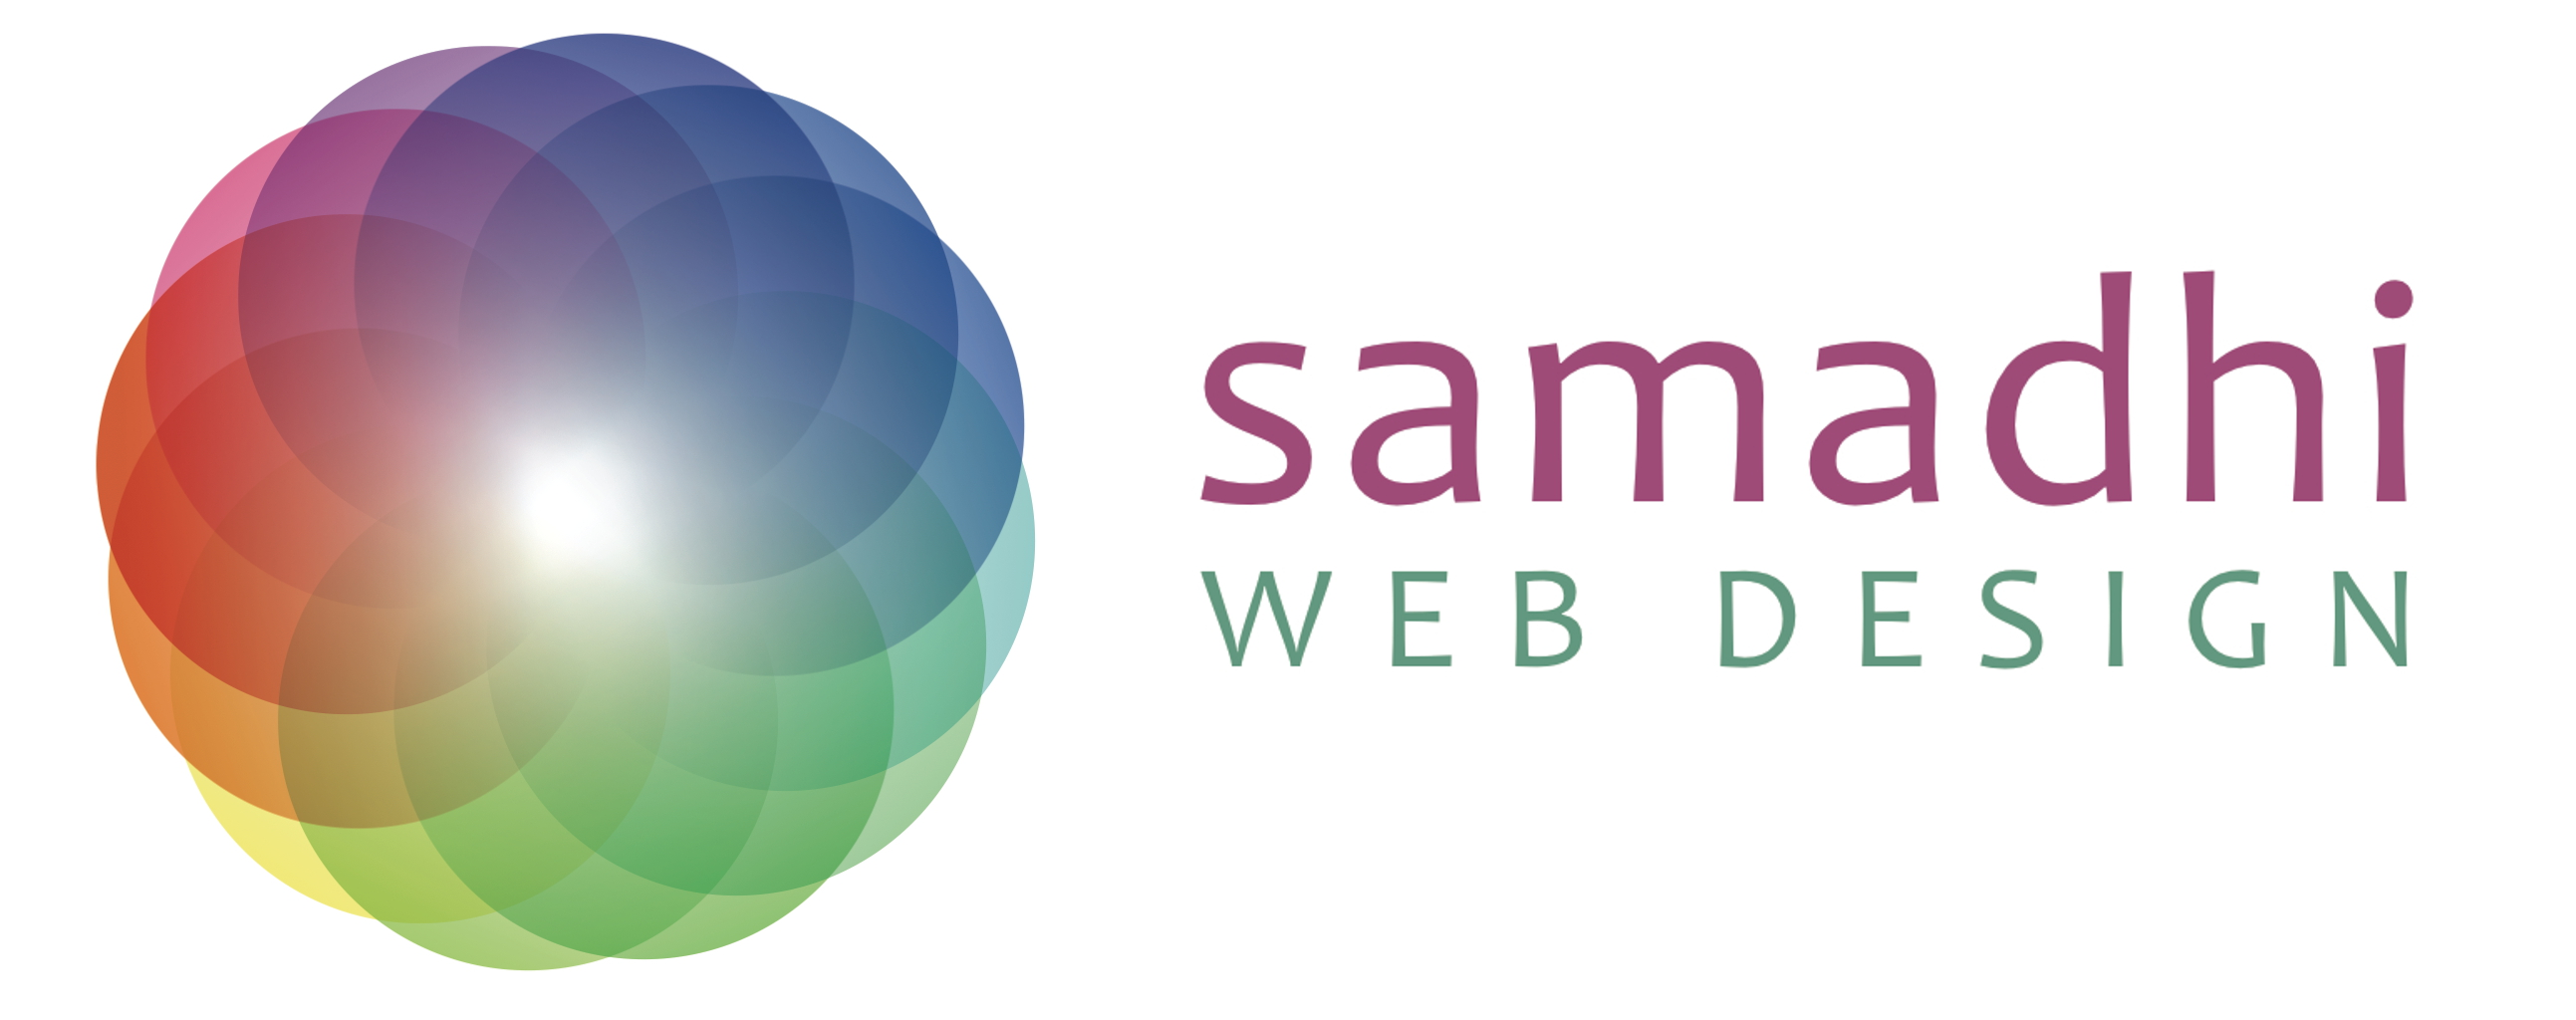 Samadhi Web Design